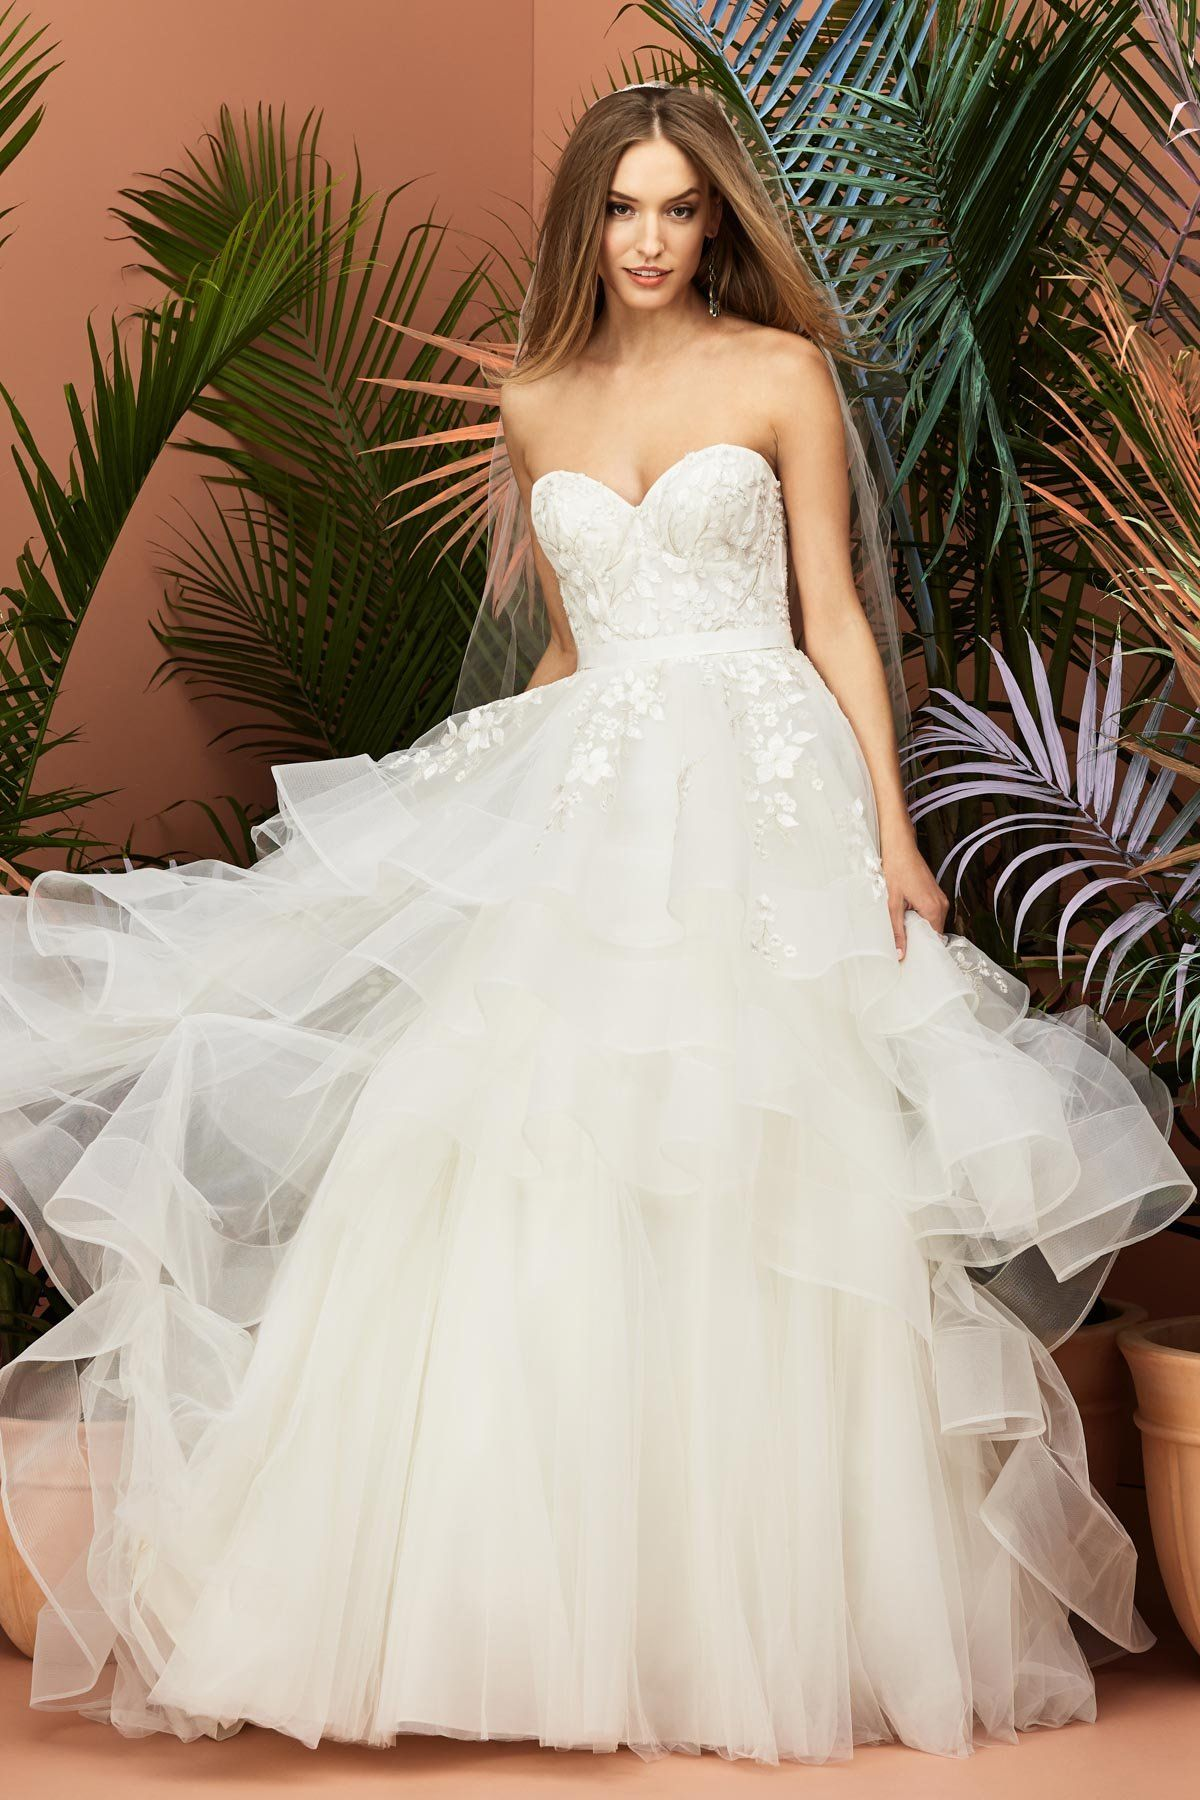 Find This Wedding Dress And More At Janene S Bridal Boutique Located In Alameda Ca Contact Us At 51 Wedding Dresses Wtoo Wedding Dress Watters Wedding Dress